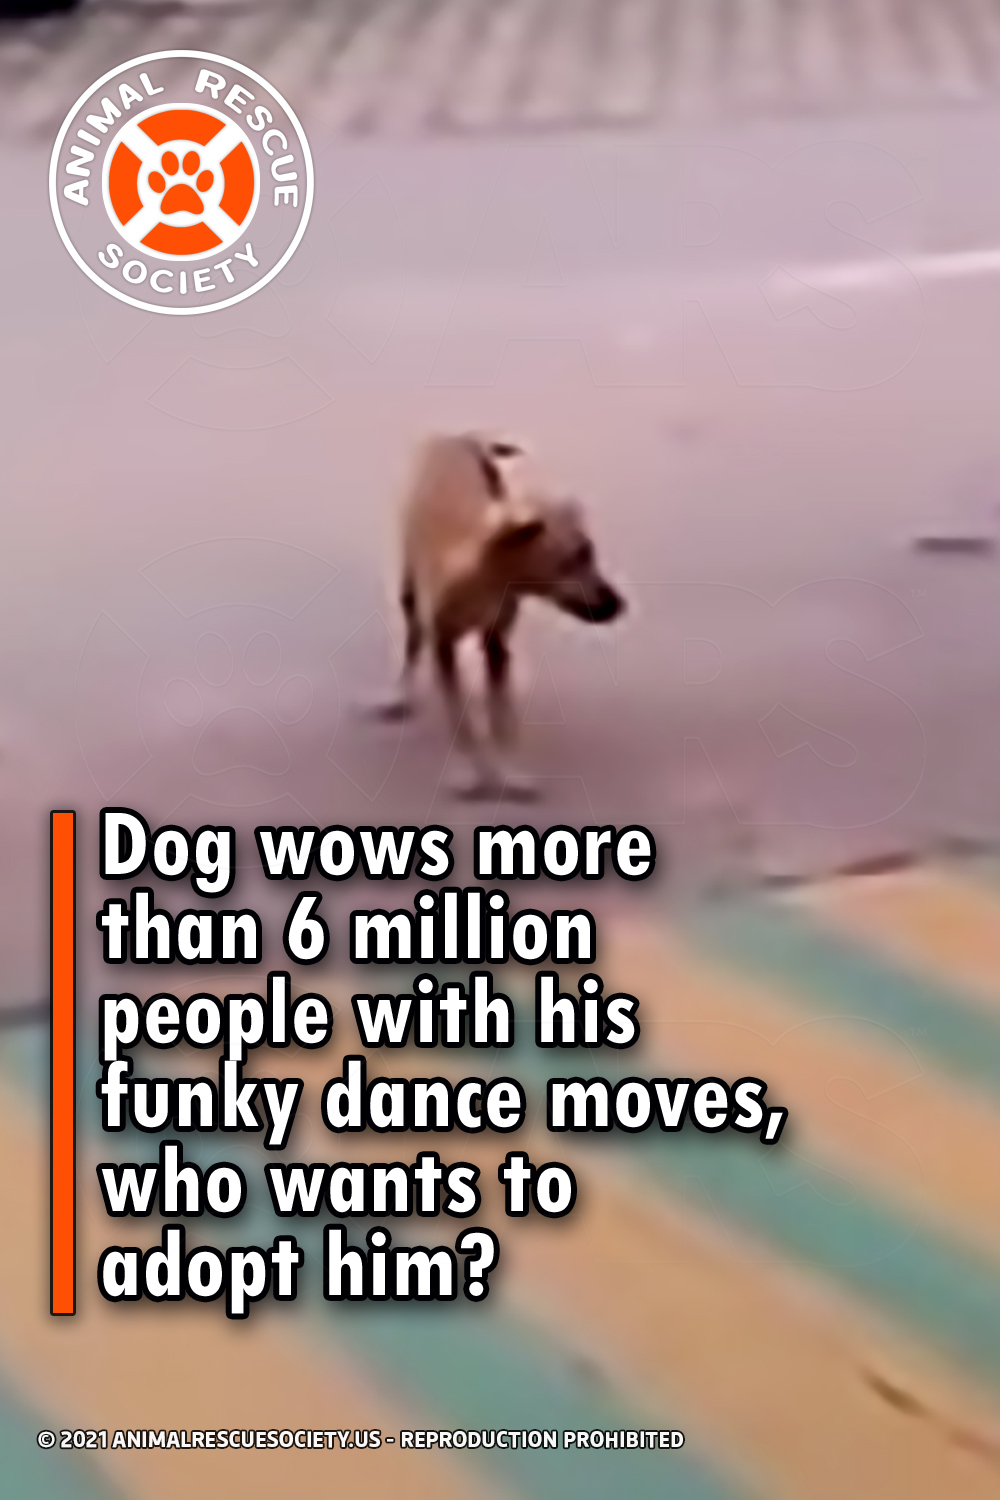 Dog wows more than 6 million people with his funky dance moves, who wants to adopt him?